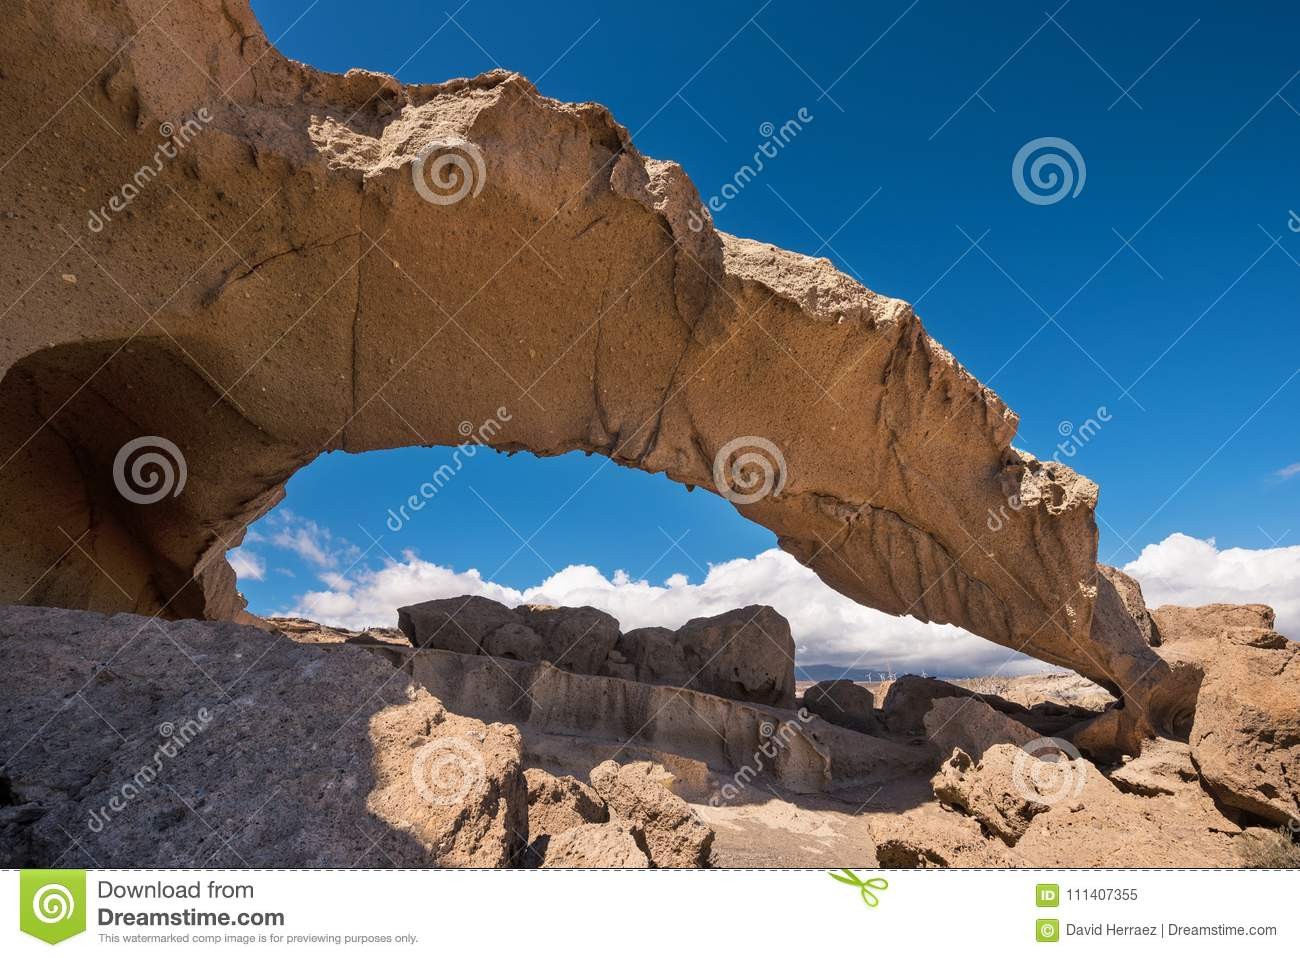 Natural volcanic rock arch formation in desertic landscape in Tenerife, Canary islands, Spain.